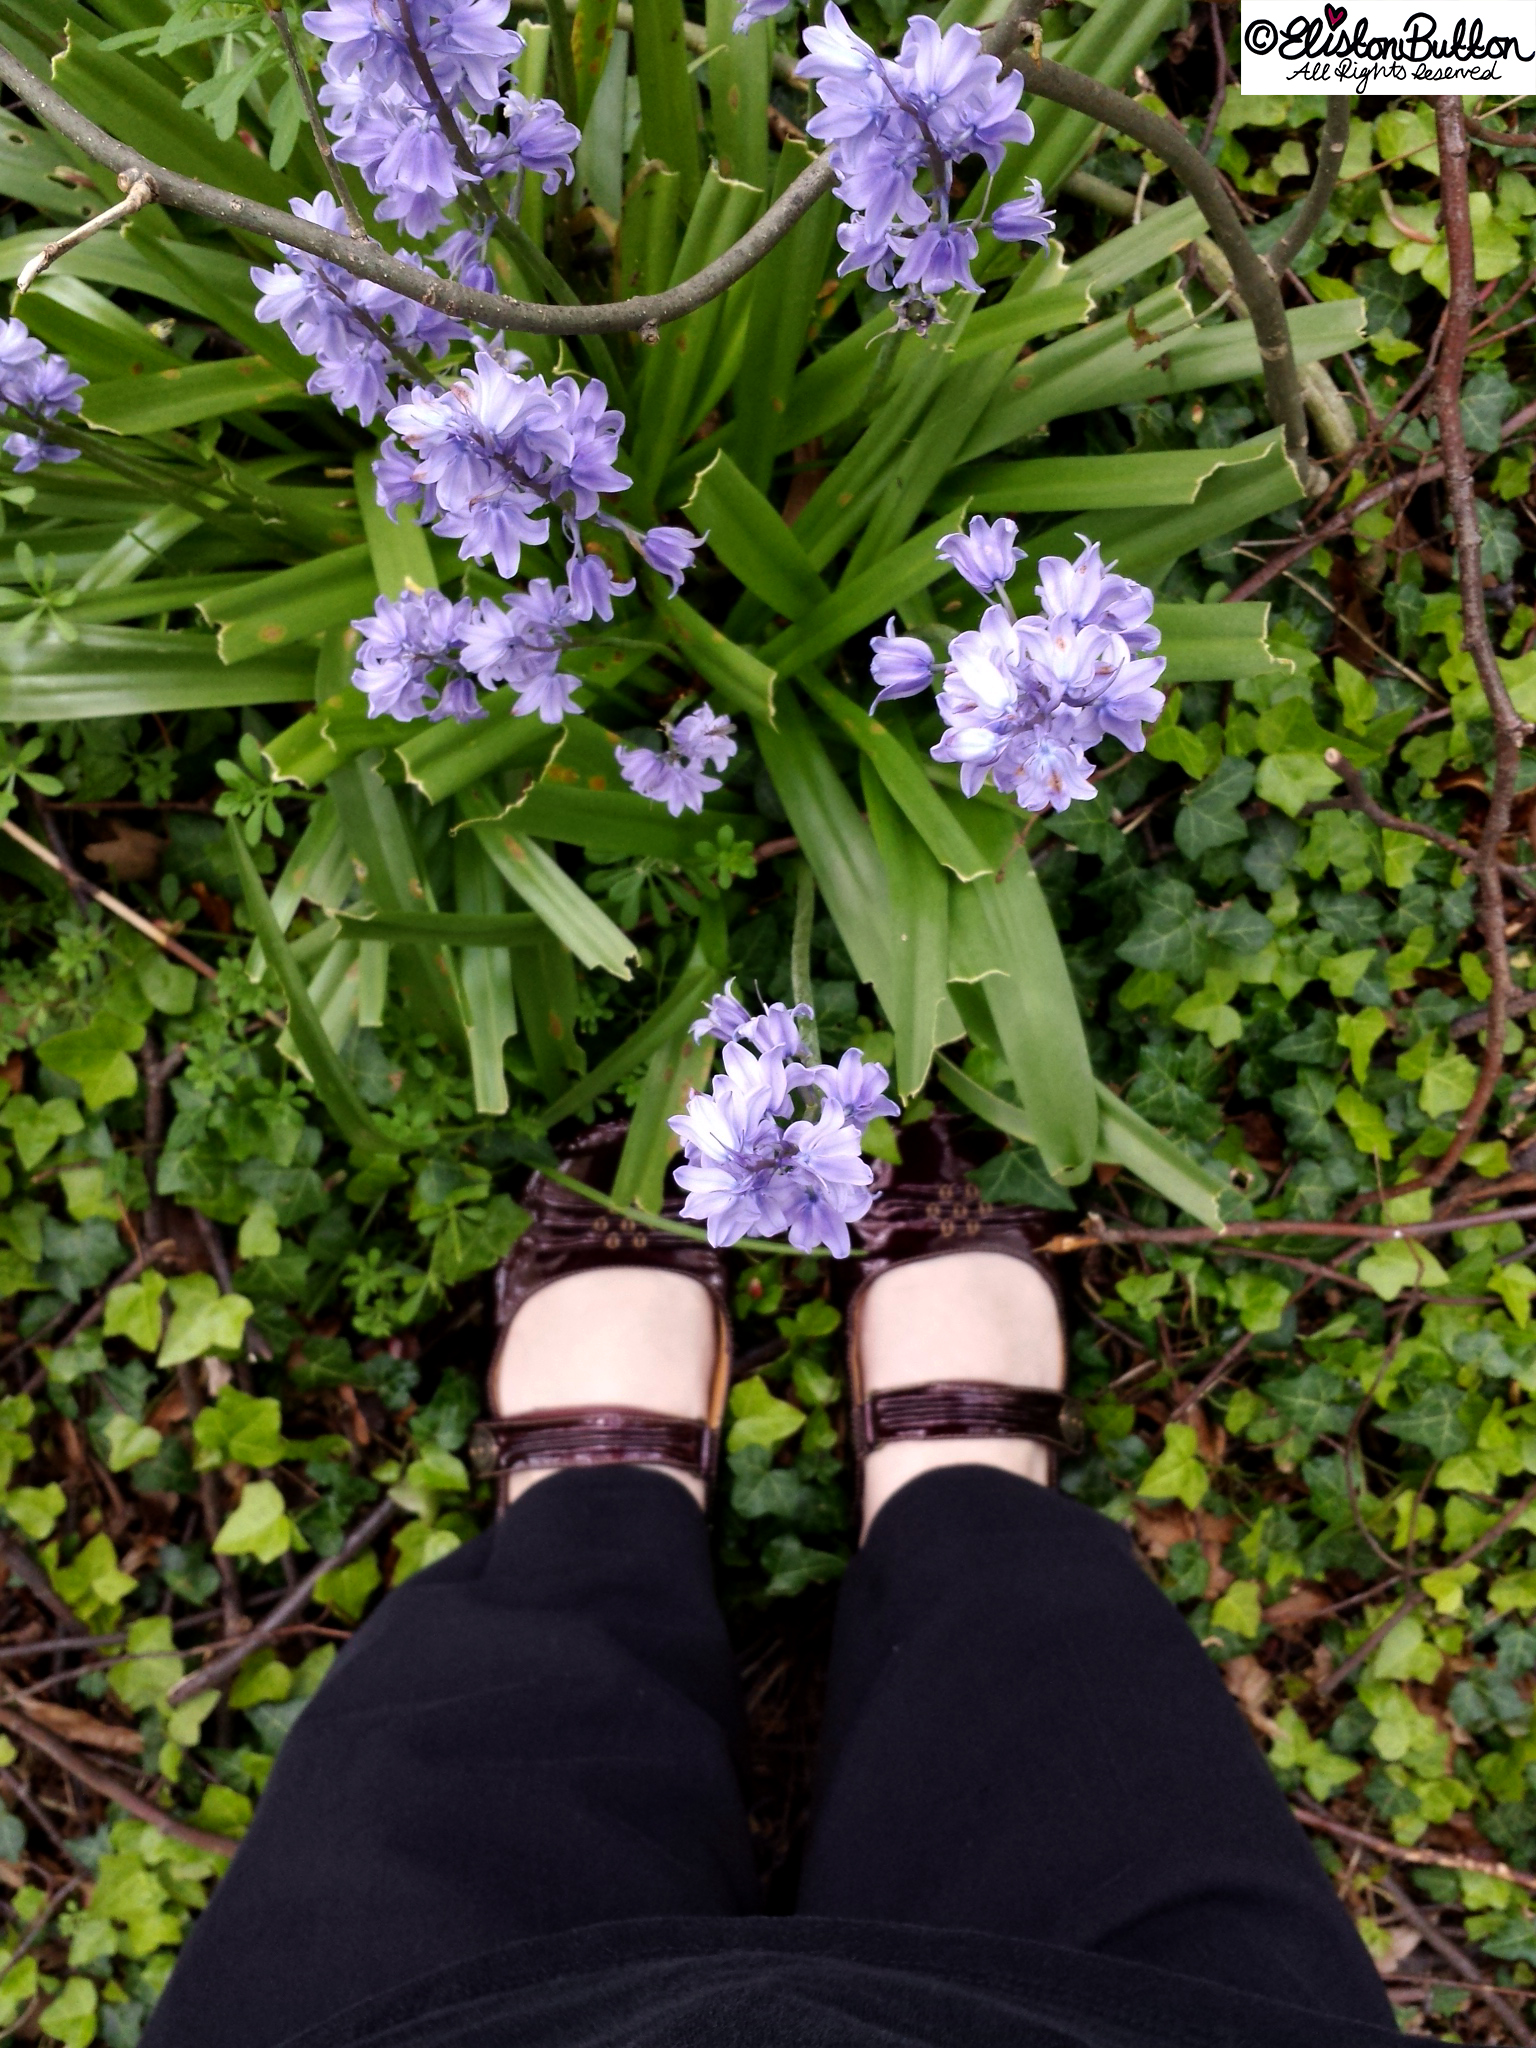 Bluebells and Pretty Shoes - An Evening Walk in Spring at www.elistonbutton.com - Eliston Button - That Crafty Kid – Art, Design, Craft & Adventure.